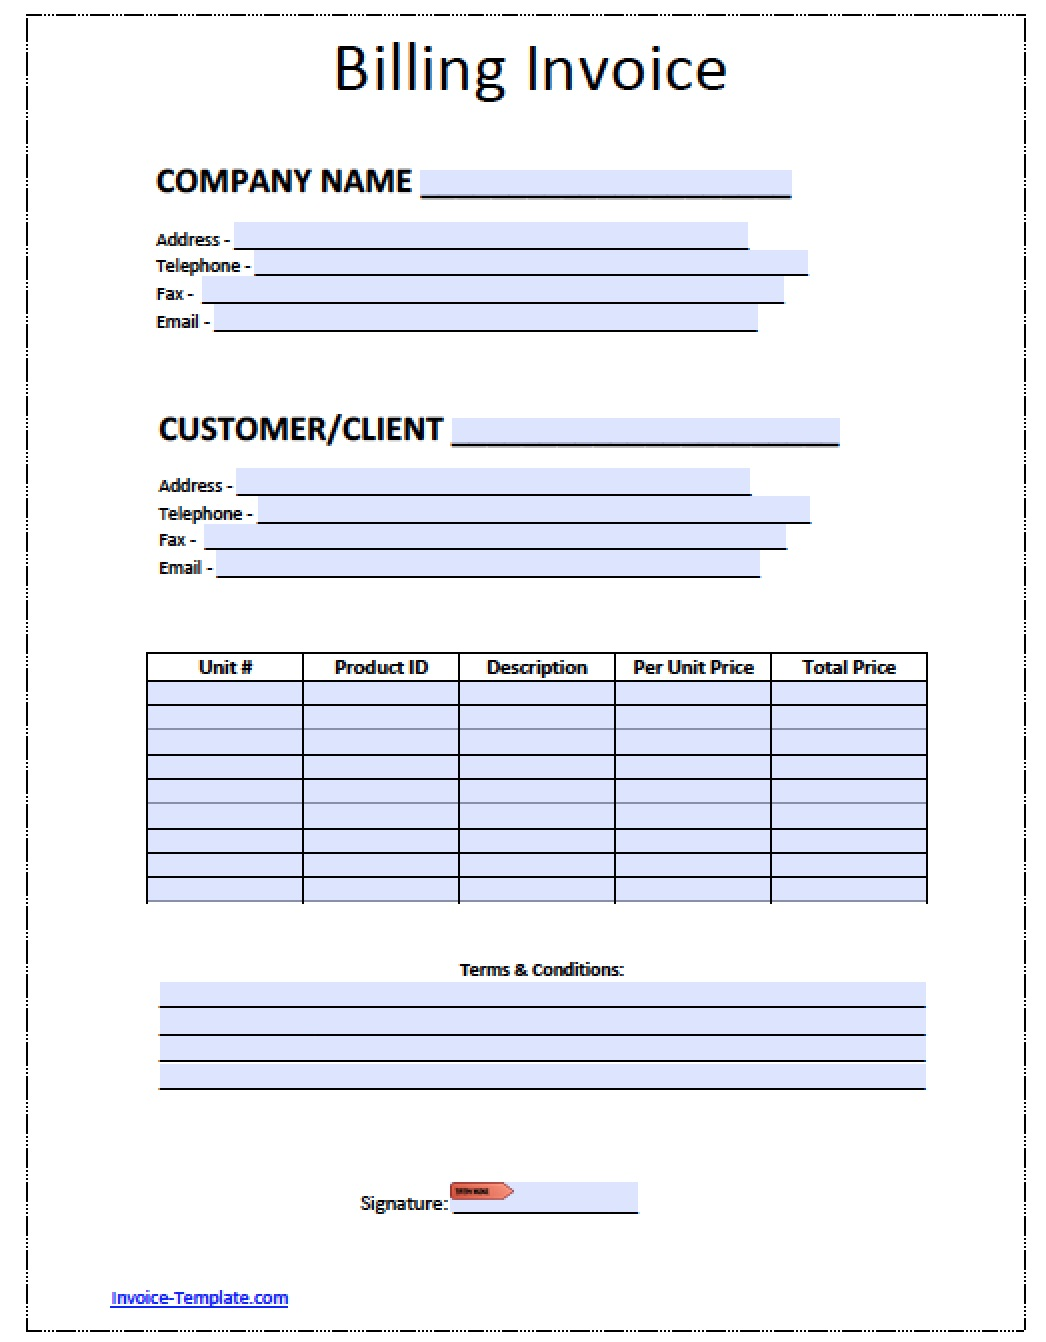 Free billing invoice template excel pdf word doc for Invoice template maker